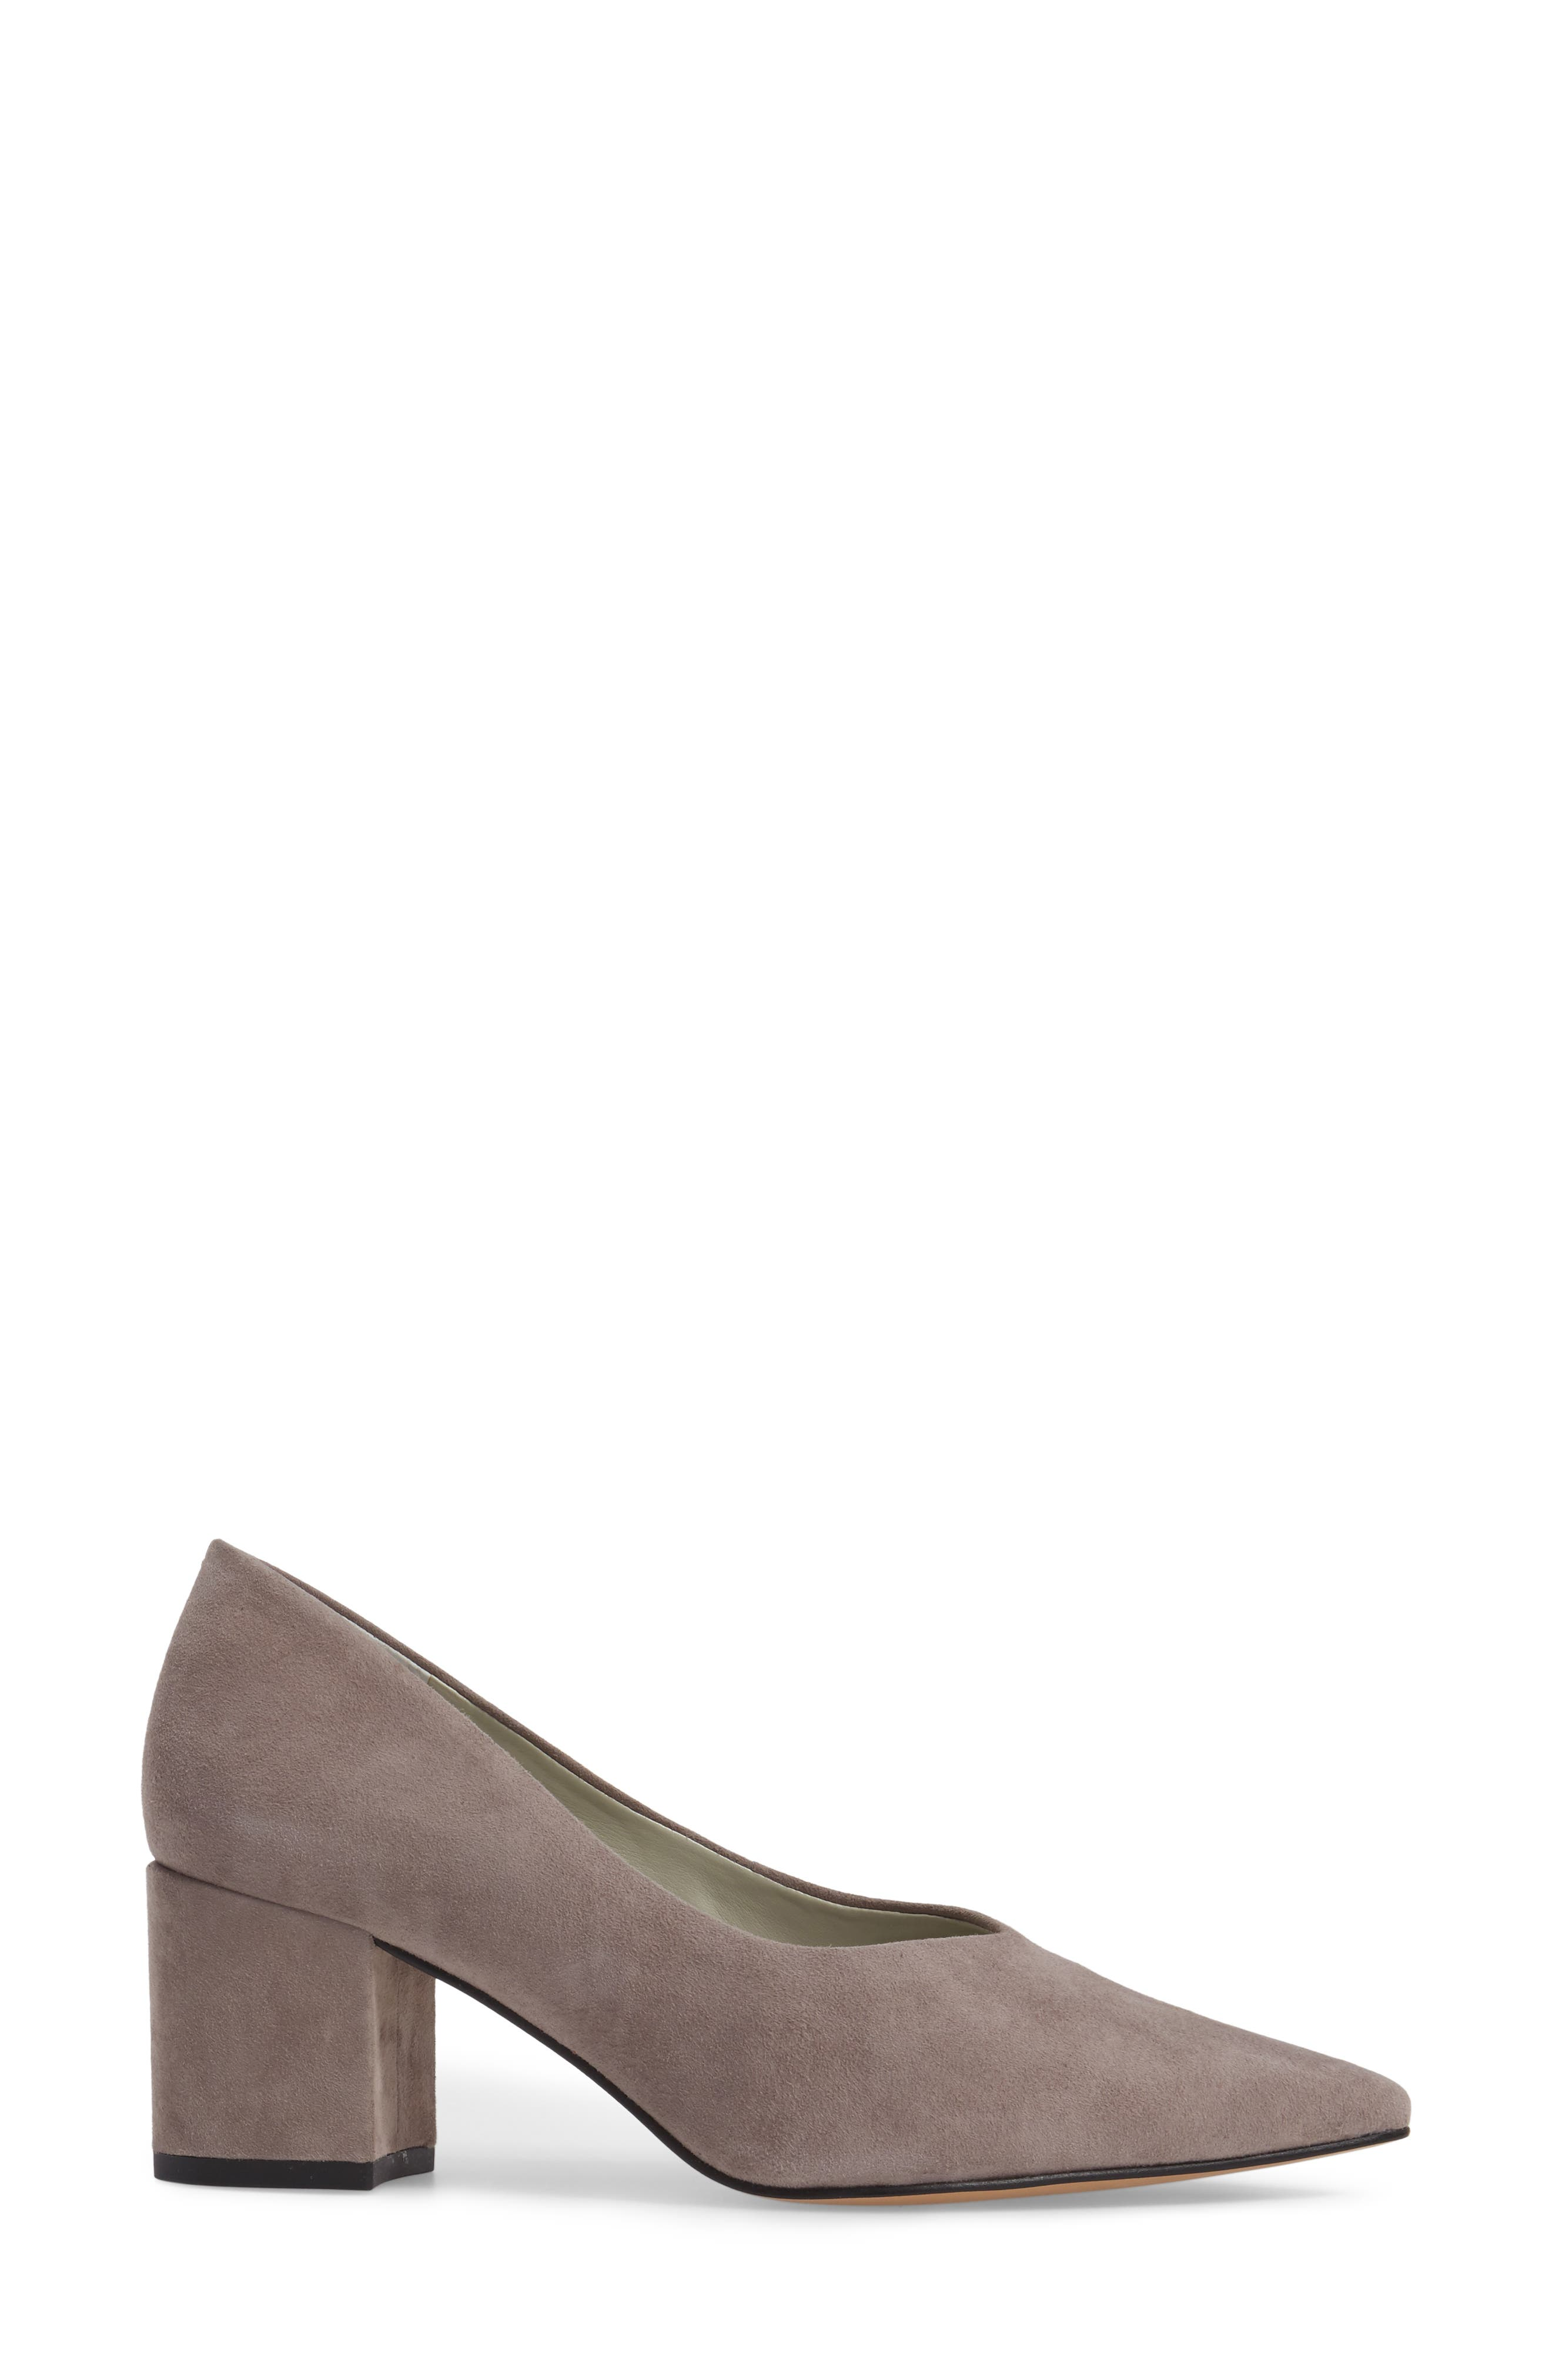 Jact Pointy Toe Pump,                             Alternate thumbnail 8, color,